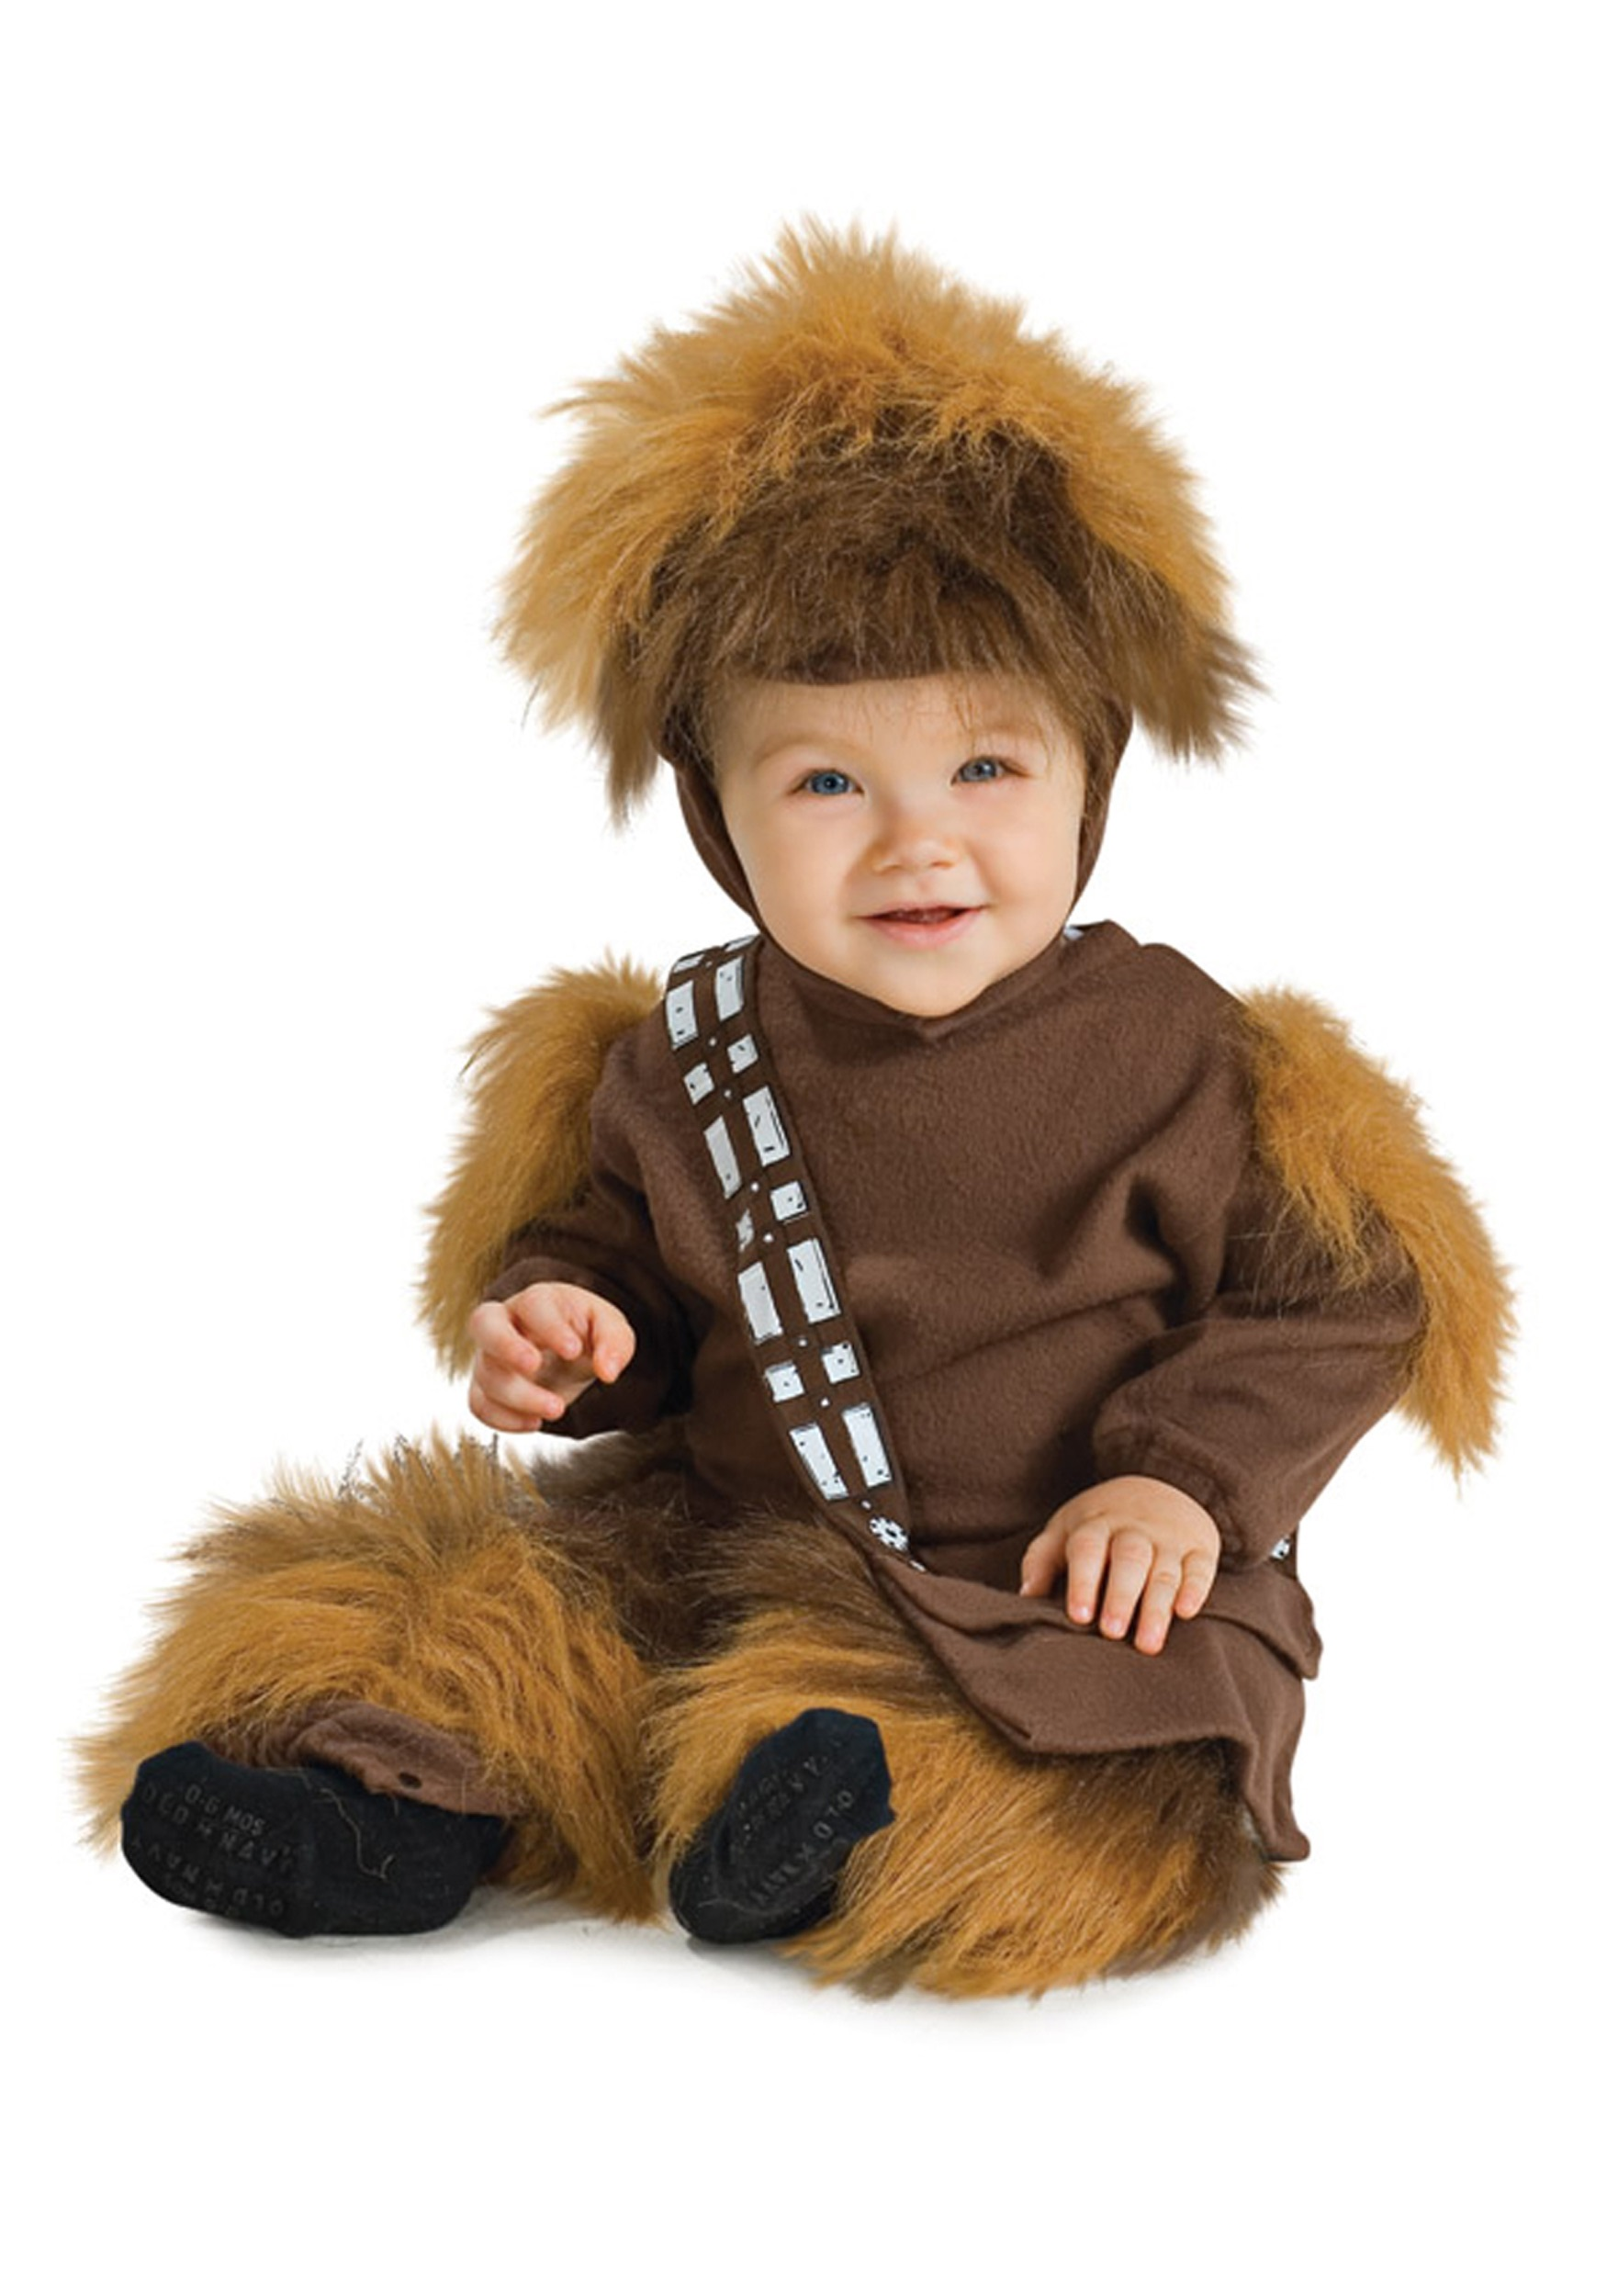 Star Wars Chewbacca Toddler Costume